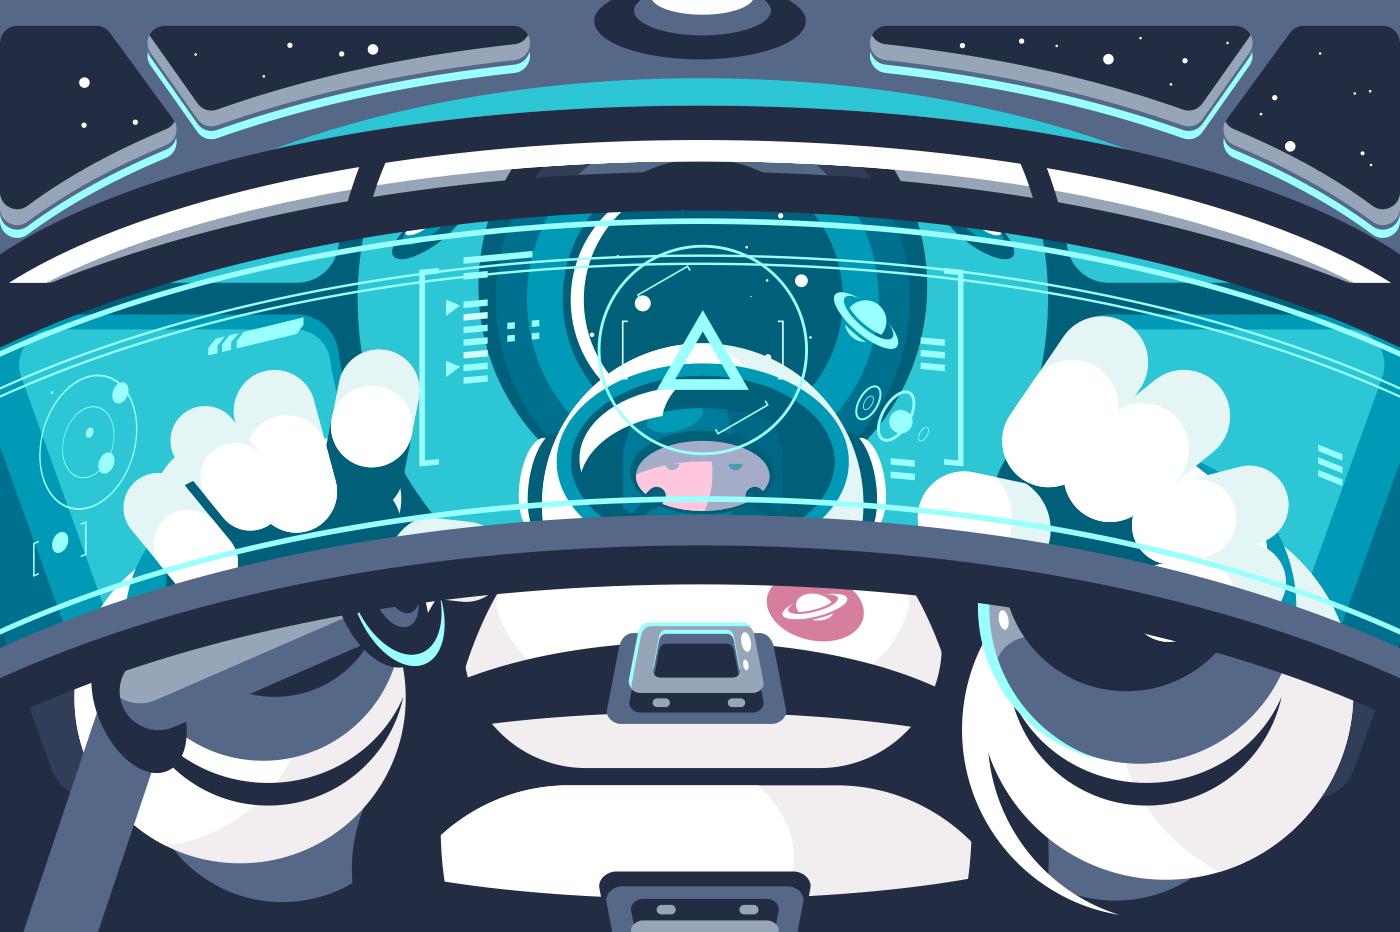 Astronaut in futuristic capsule or container. Human in spaceship outer space. Flat. Vector illustration.